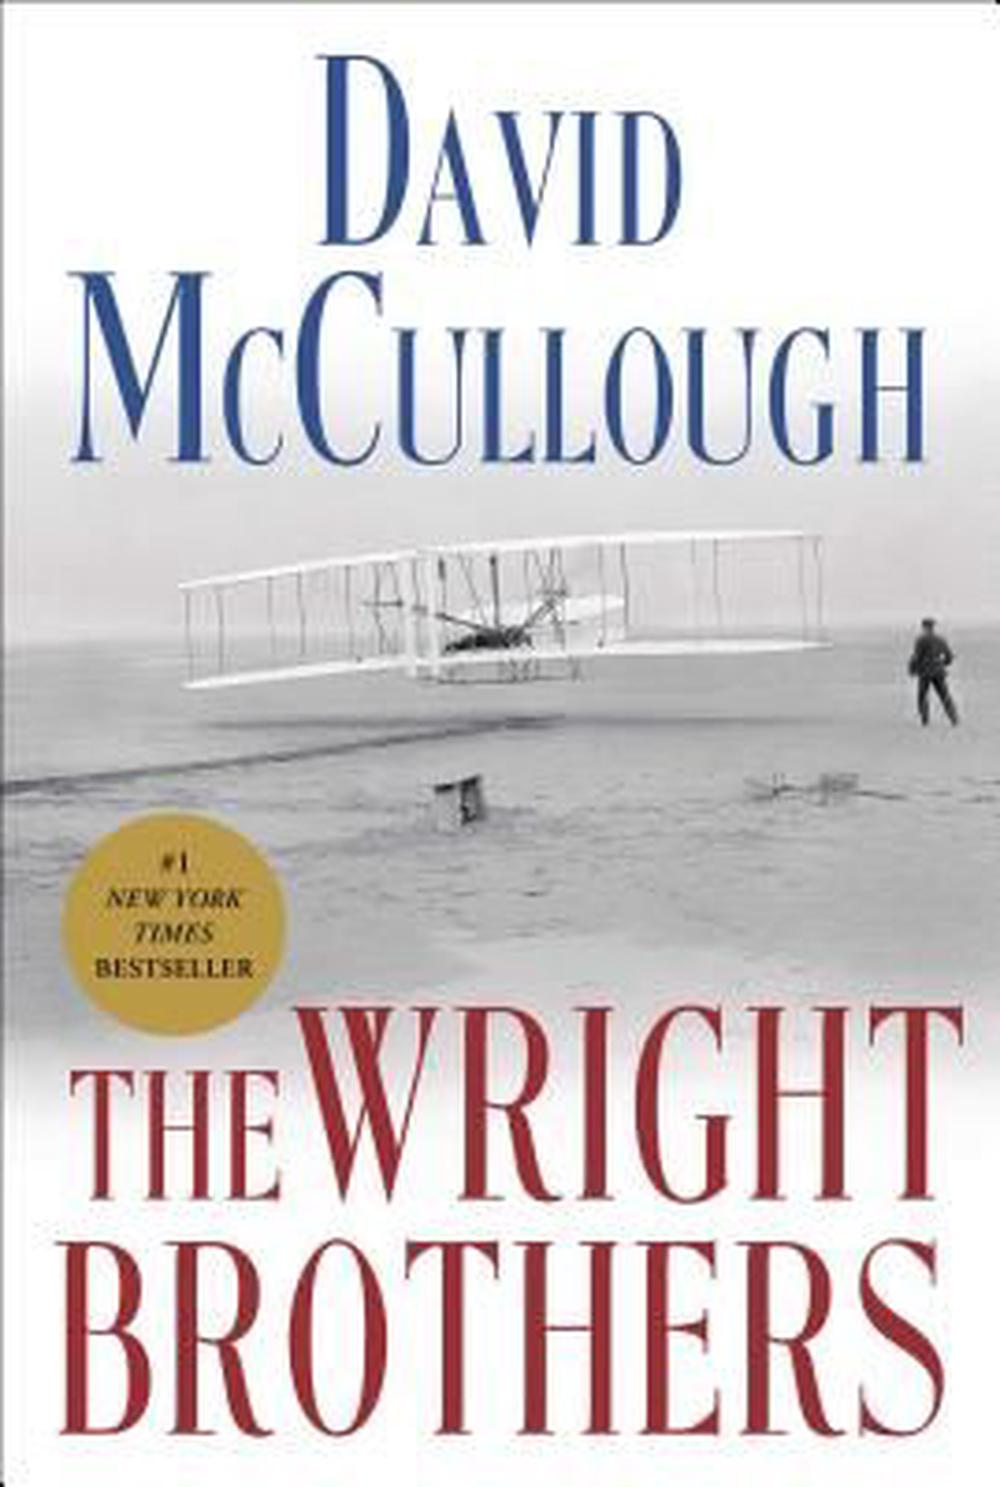 The Wright Brothers by David McCullough, ISBN: 9781476728742